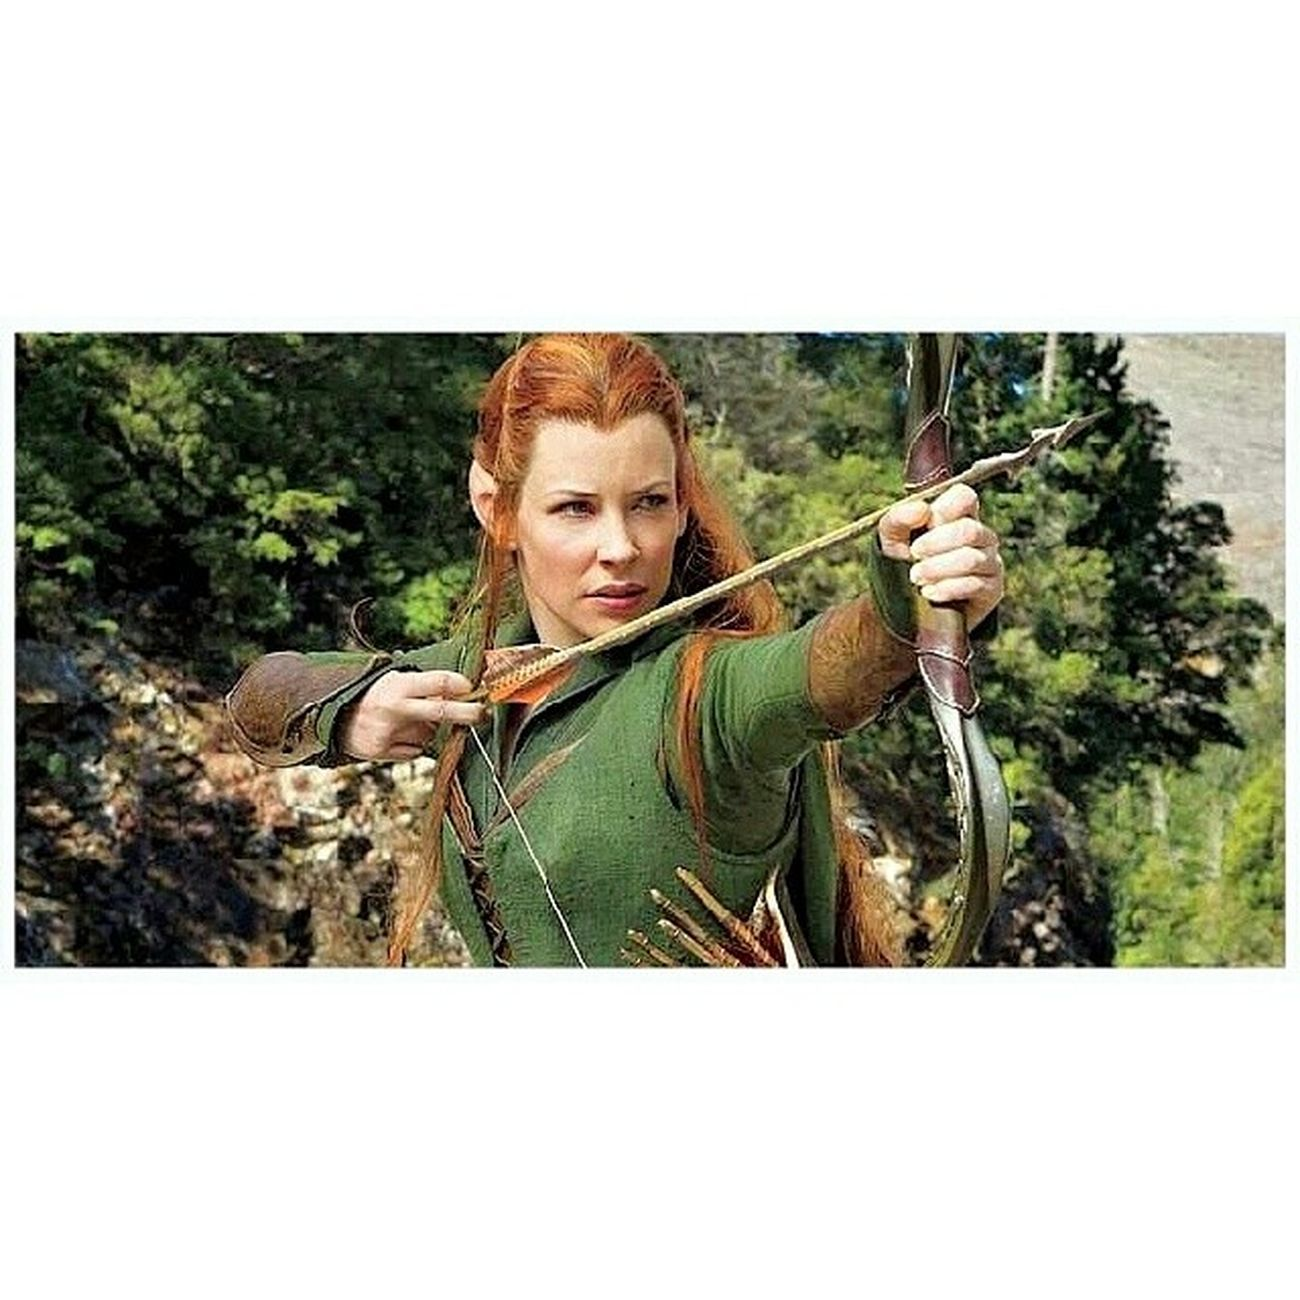 I'm late but my WCW is the beautiful and complete badass, Tauriel from The Hobbit: The Desolation of Smaug. TheHobbit Thedeolationofsmaug Smaug elf elves sylvanelves tolkien crush beautiful beauty